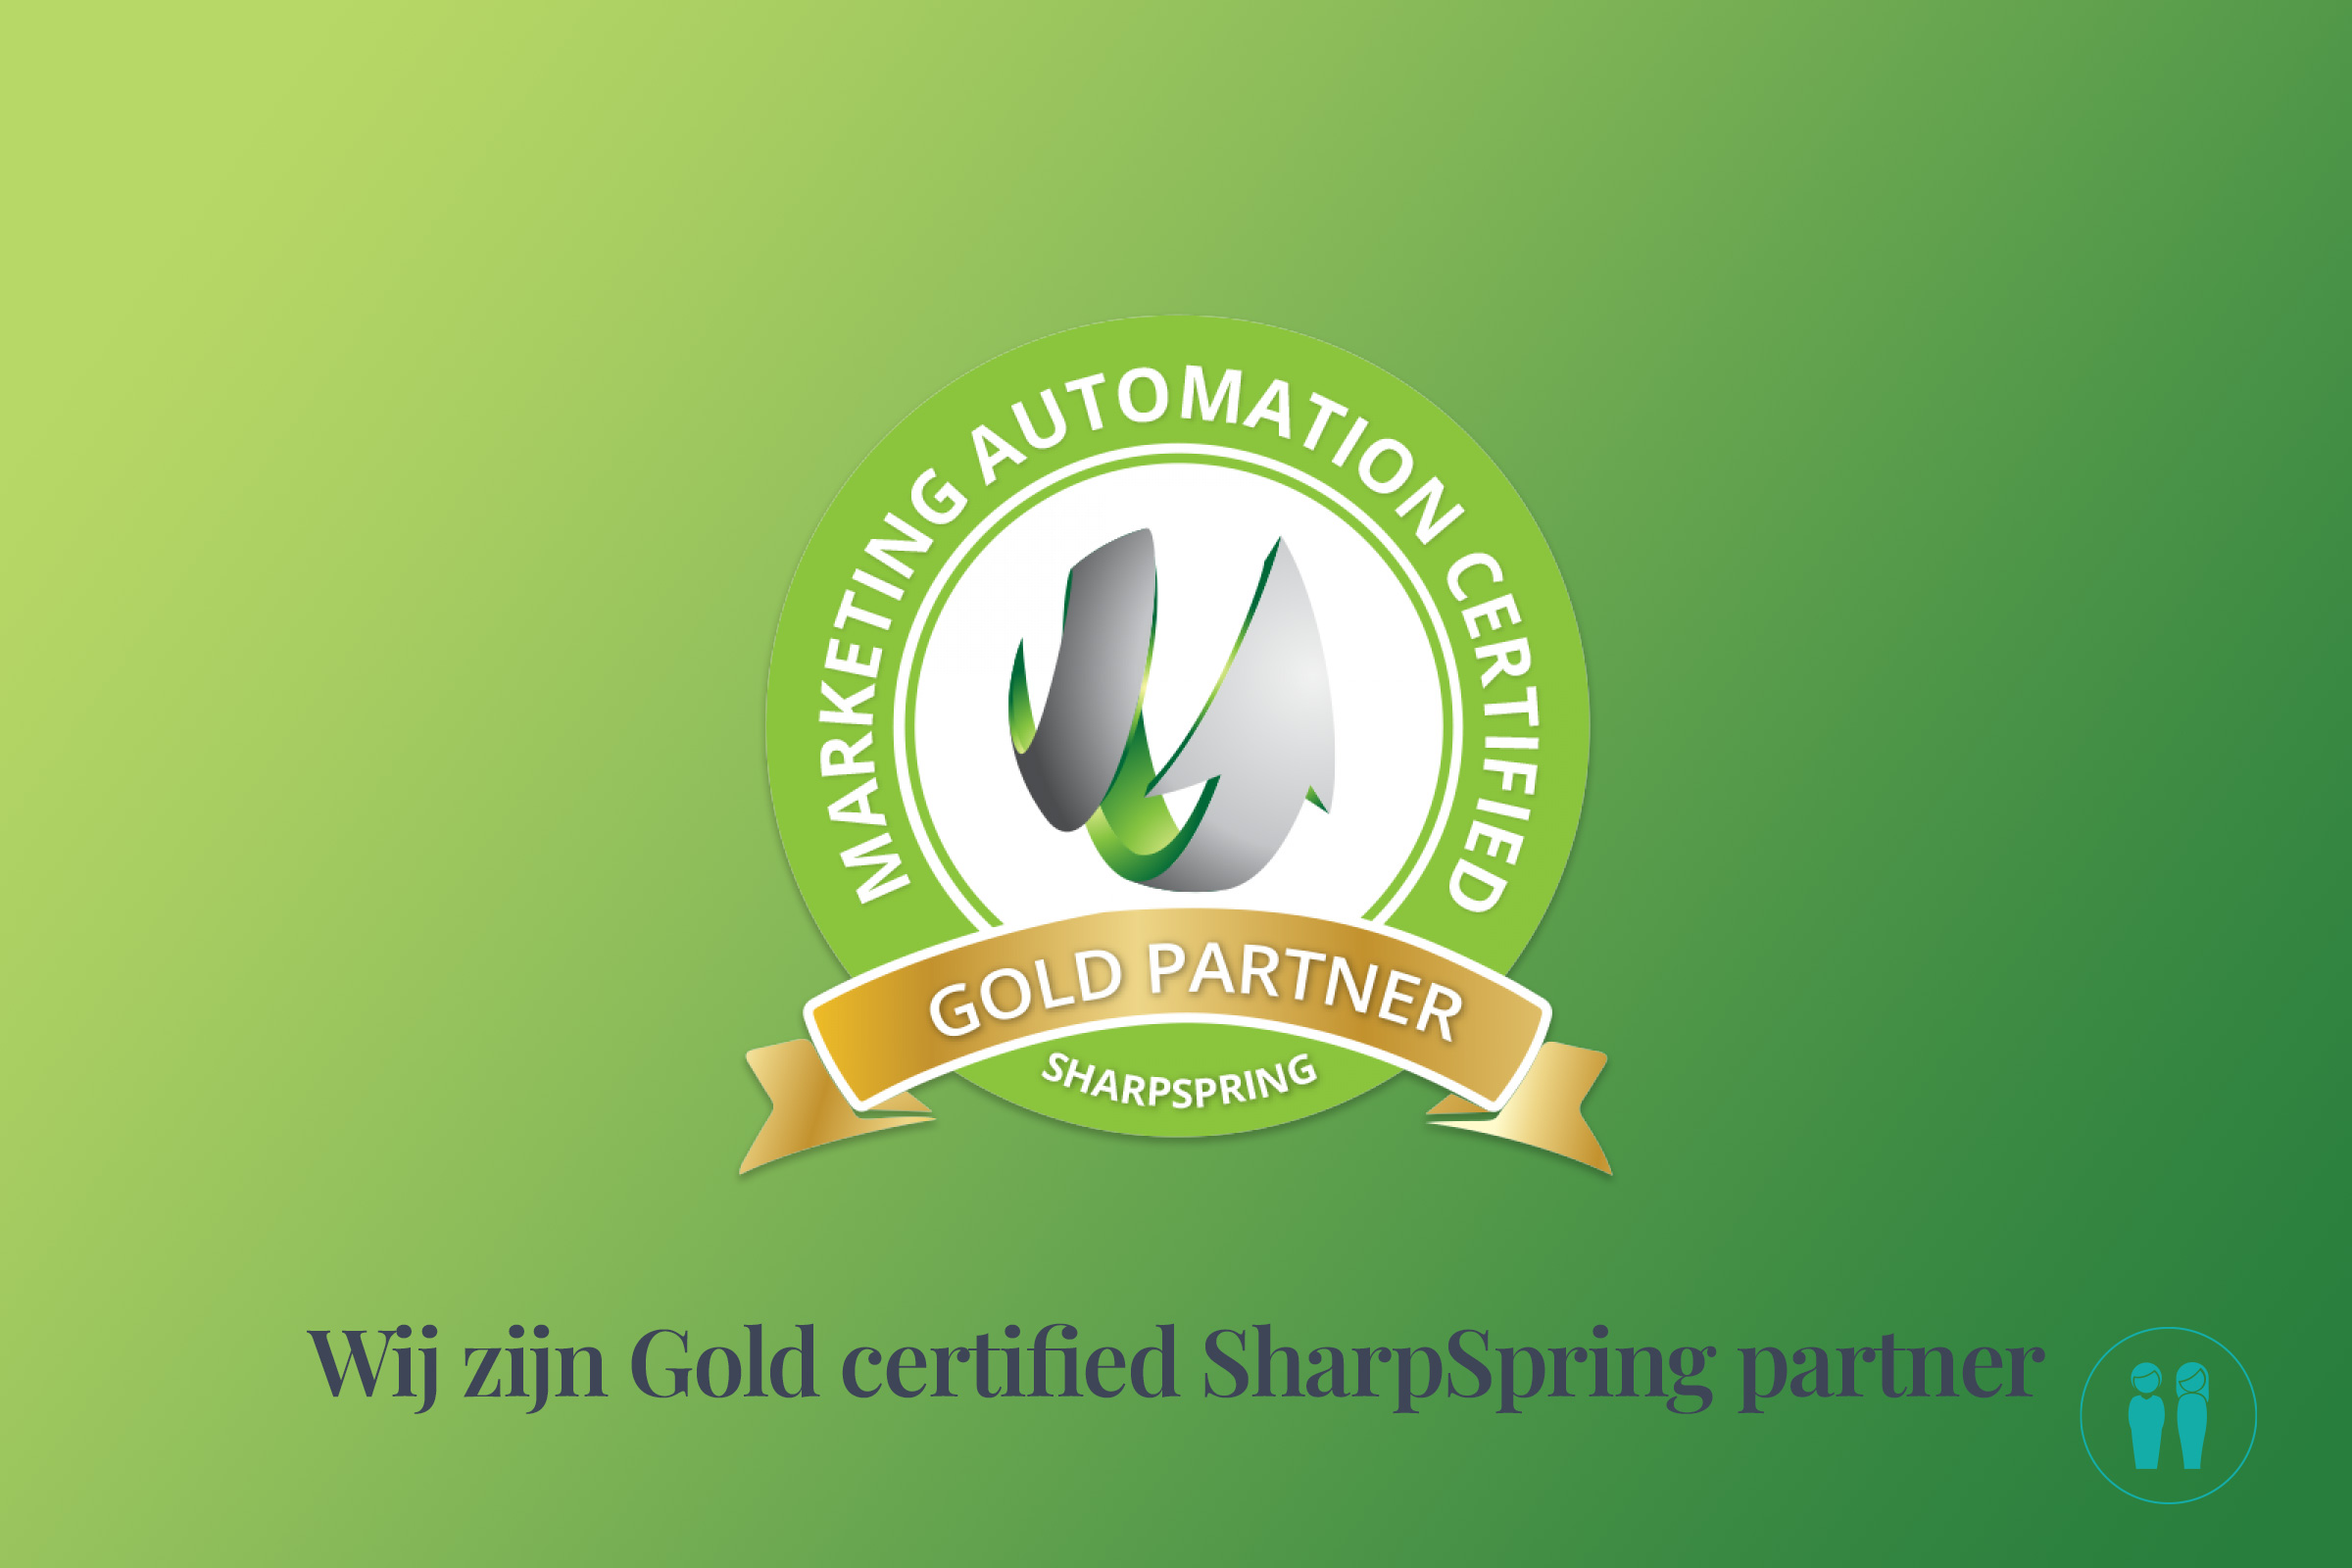 sharpspring gold partner stanandstacy.